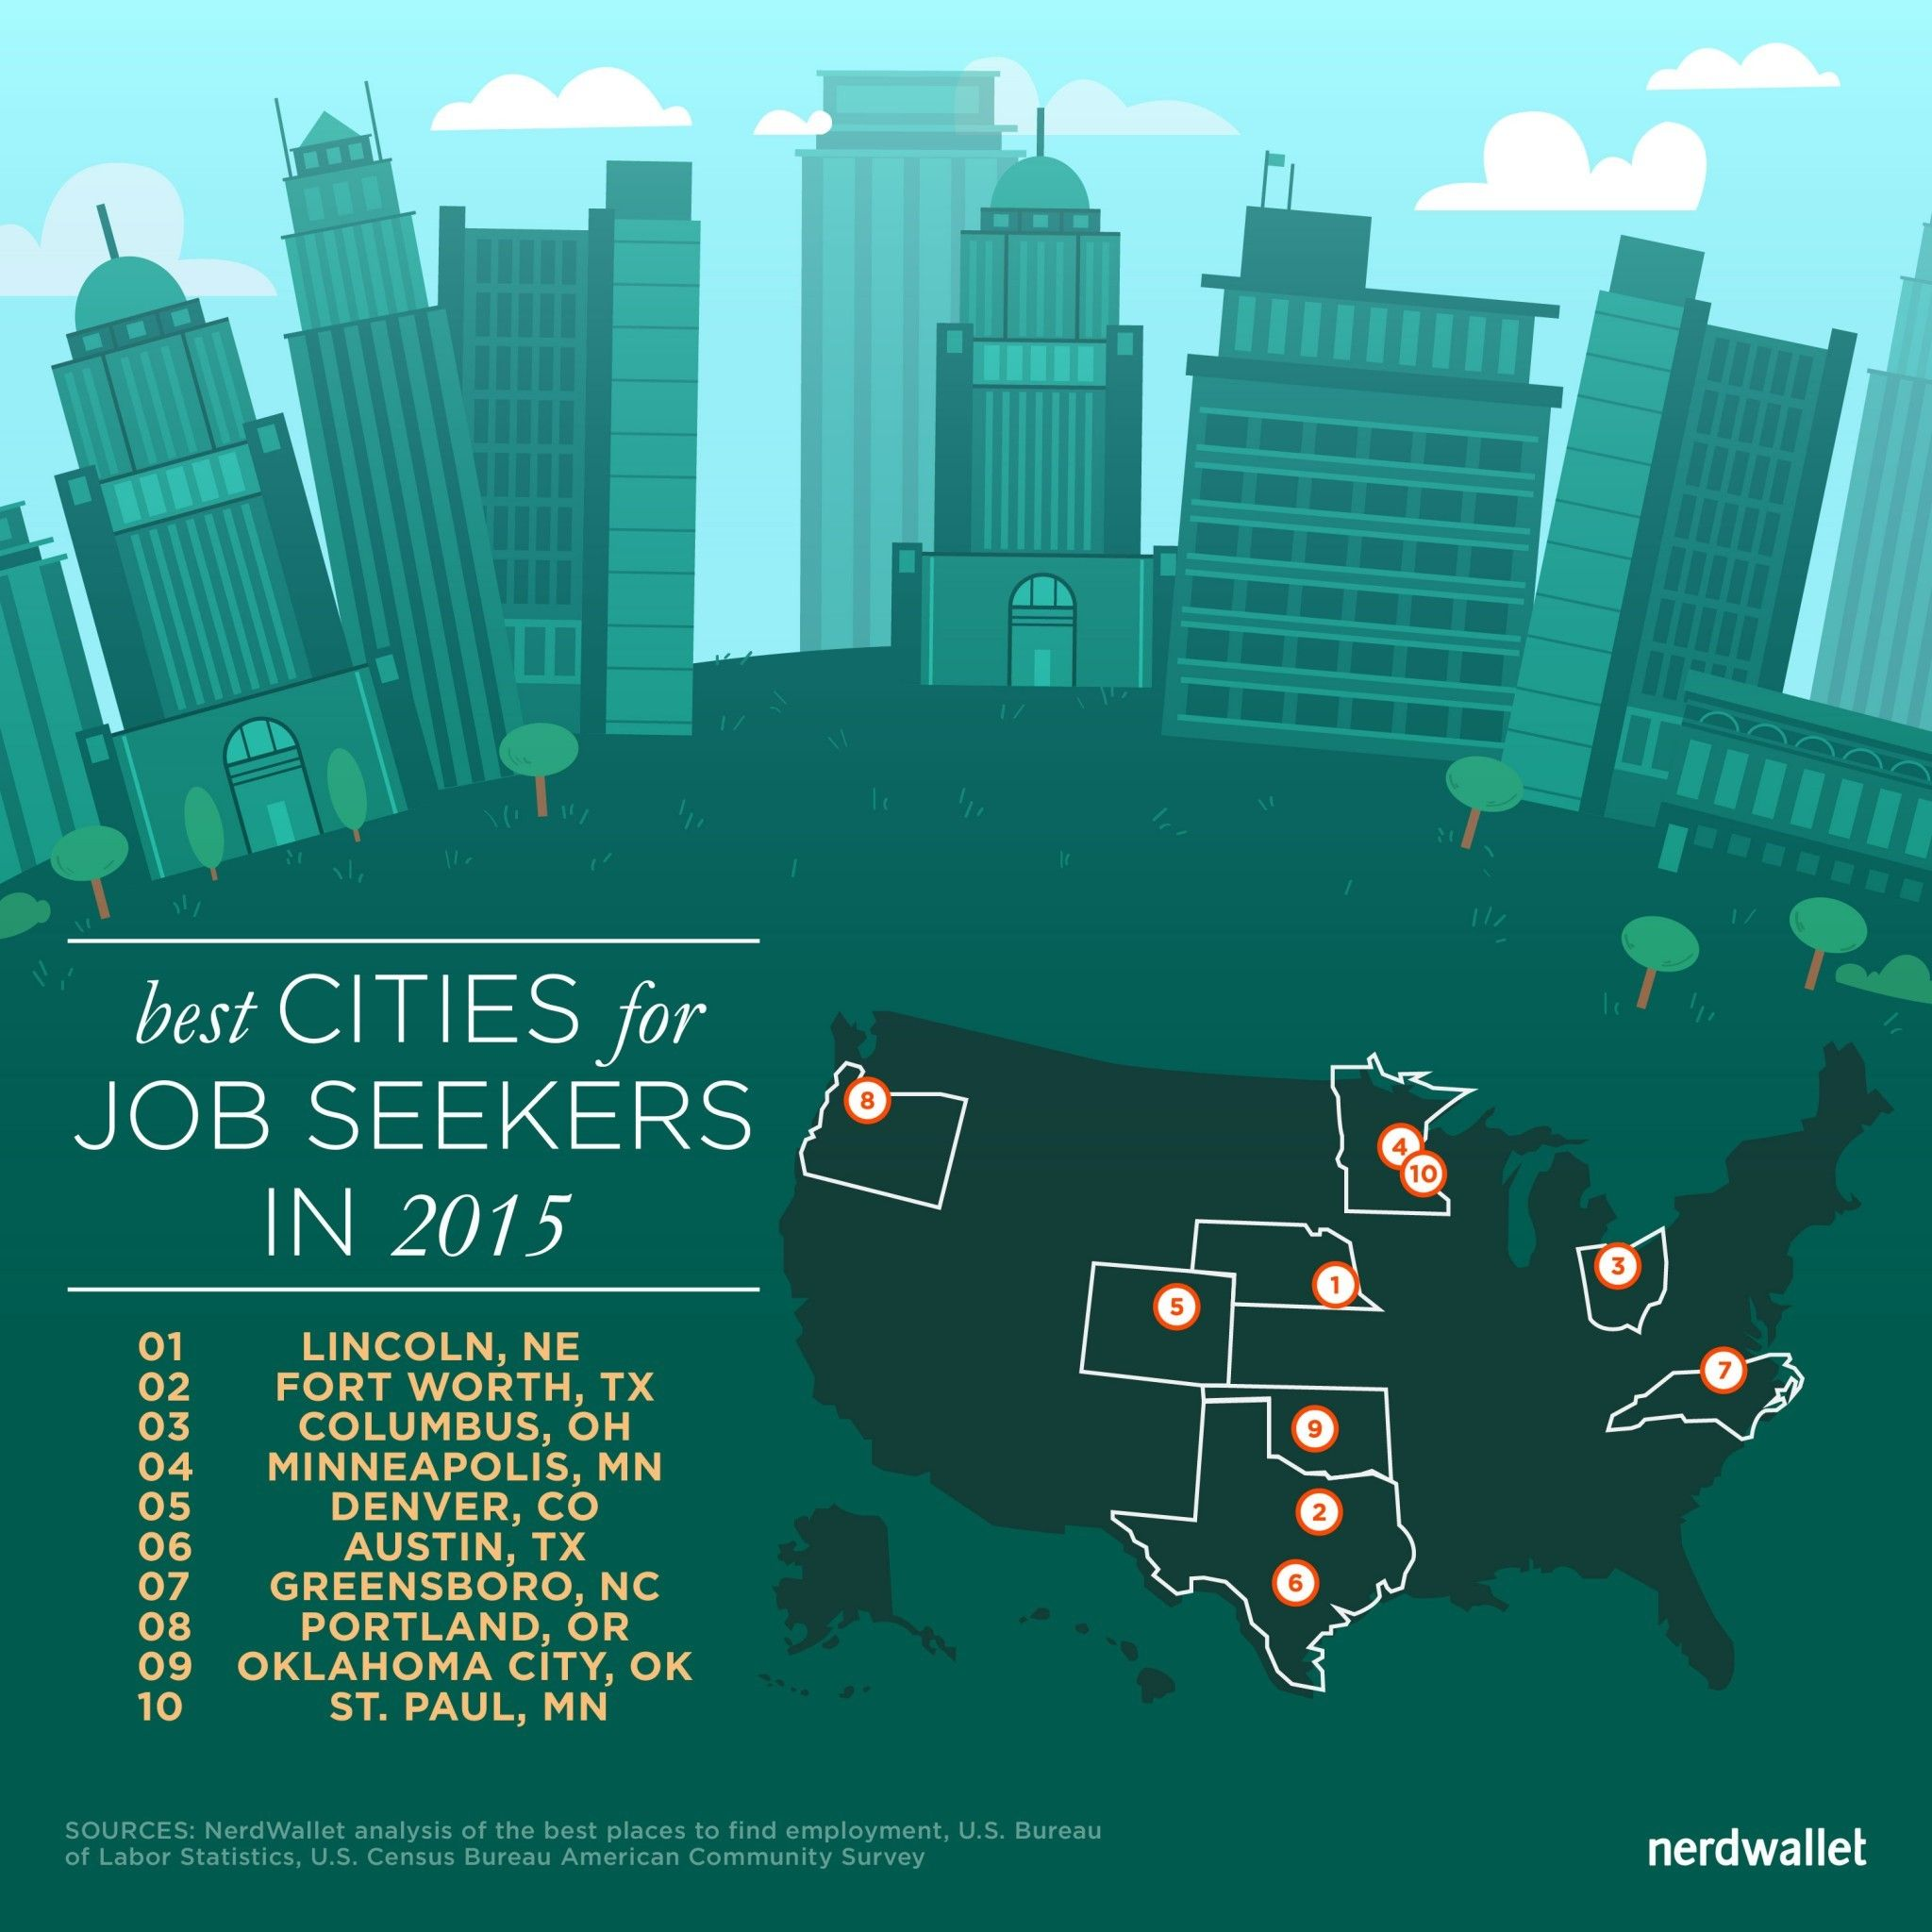 best_cities_for_job_seekers_map_1450px_011415-150ppi-01